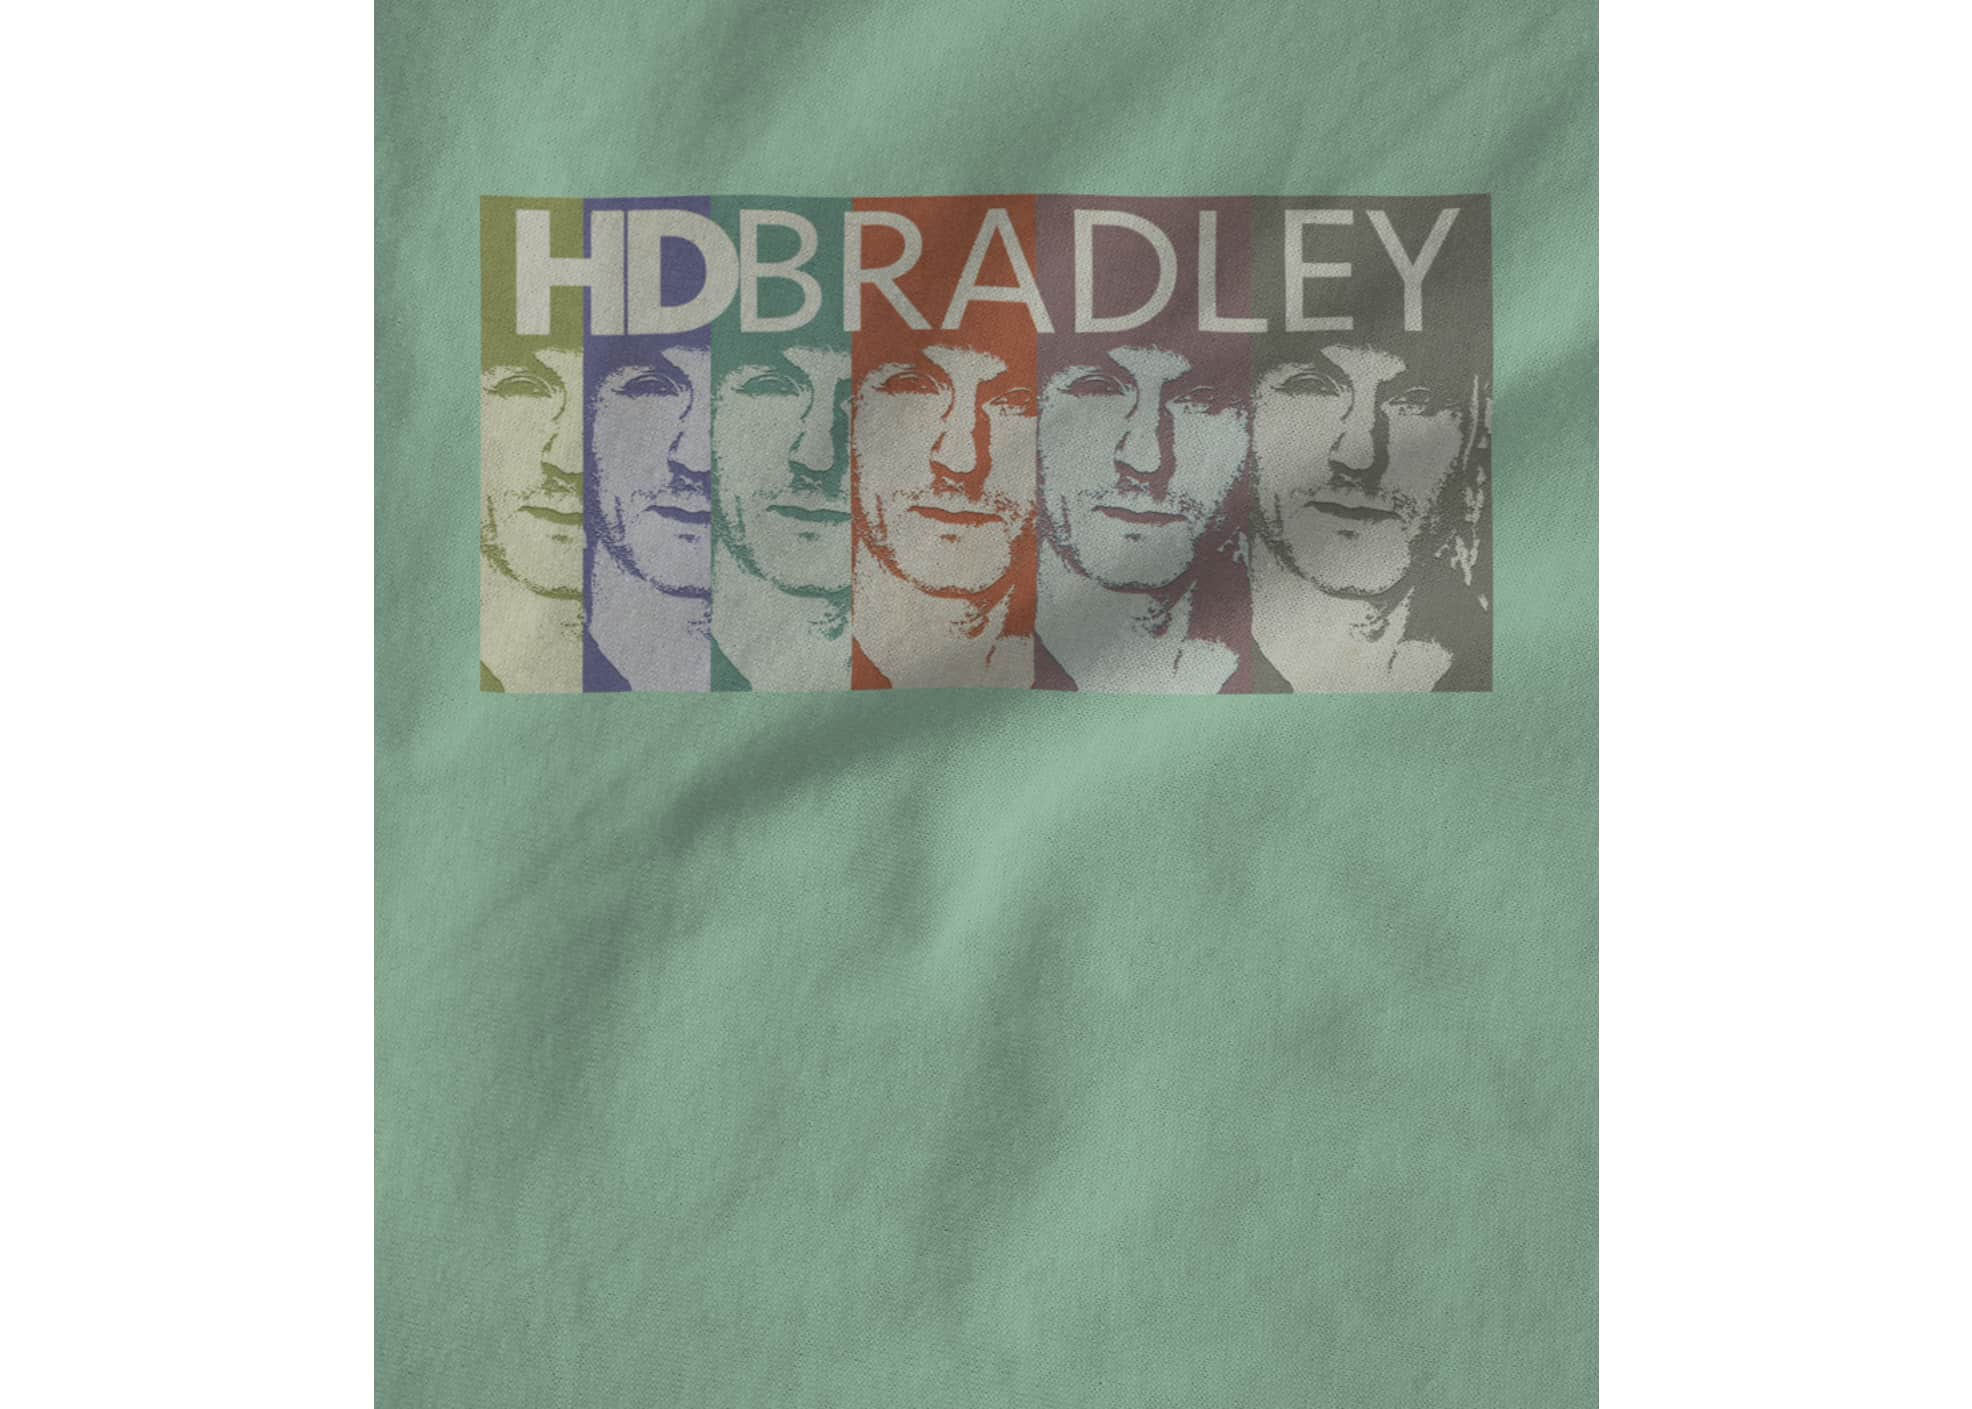 Hd bradley bunch o  mugs 1598190242